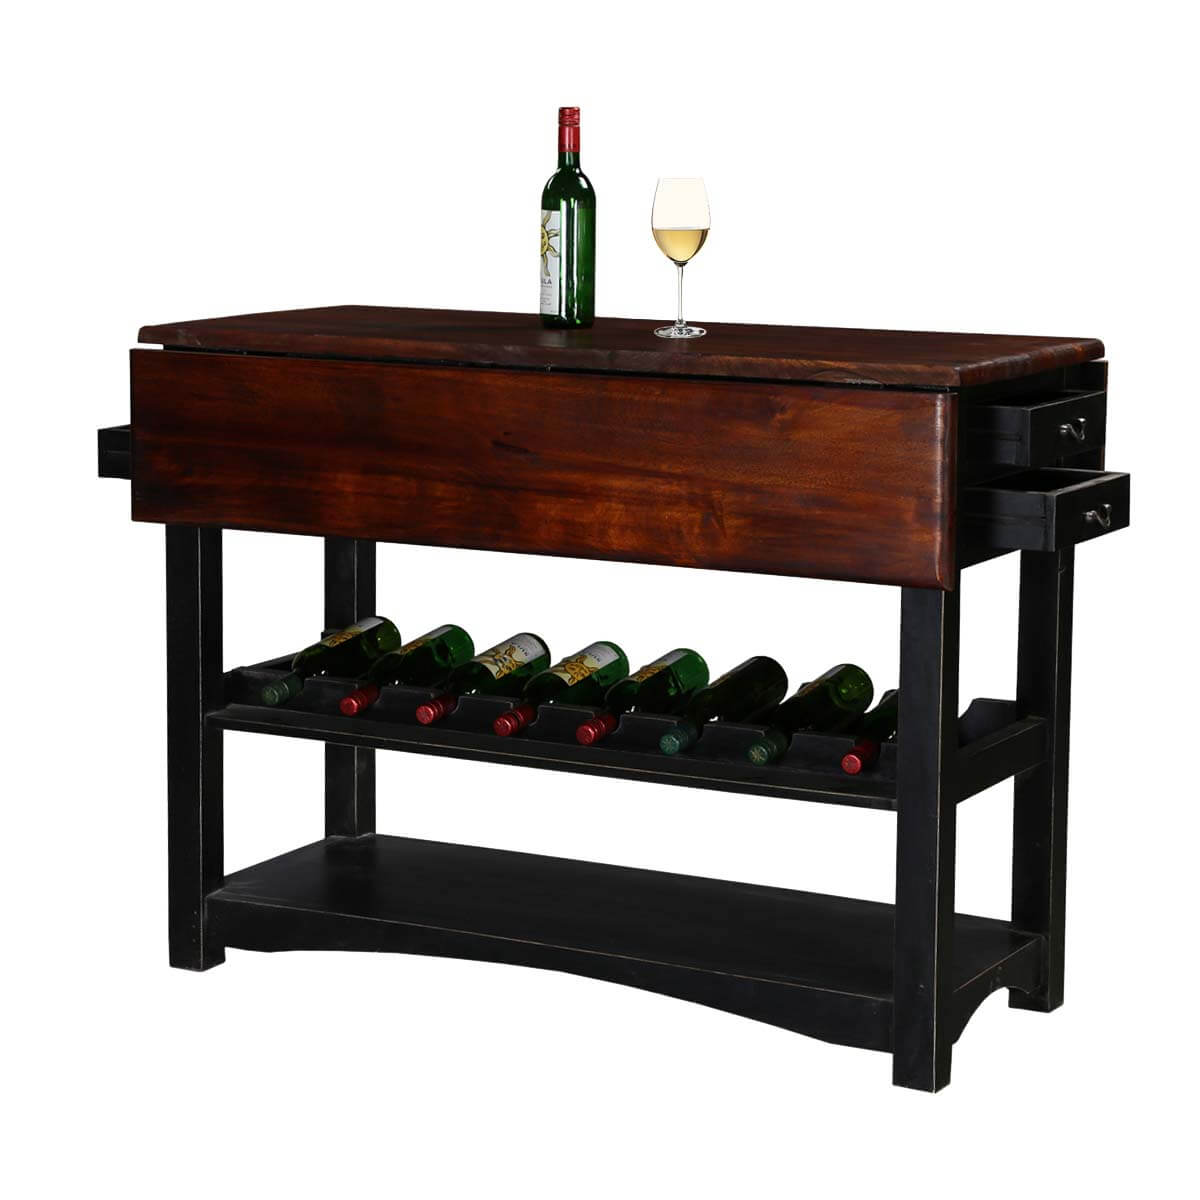 Ohio Modern Handcrafted Mango Wood Wine Rack Table W